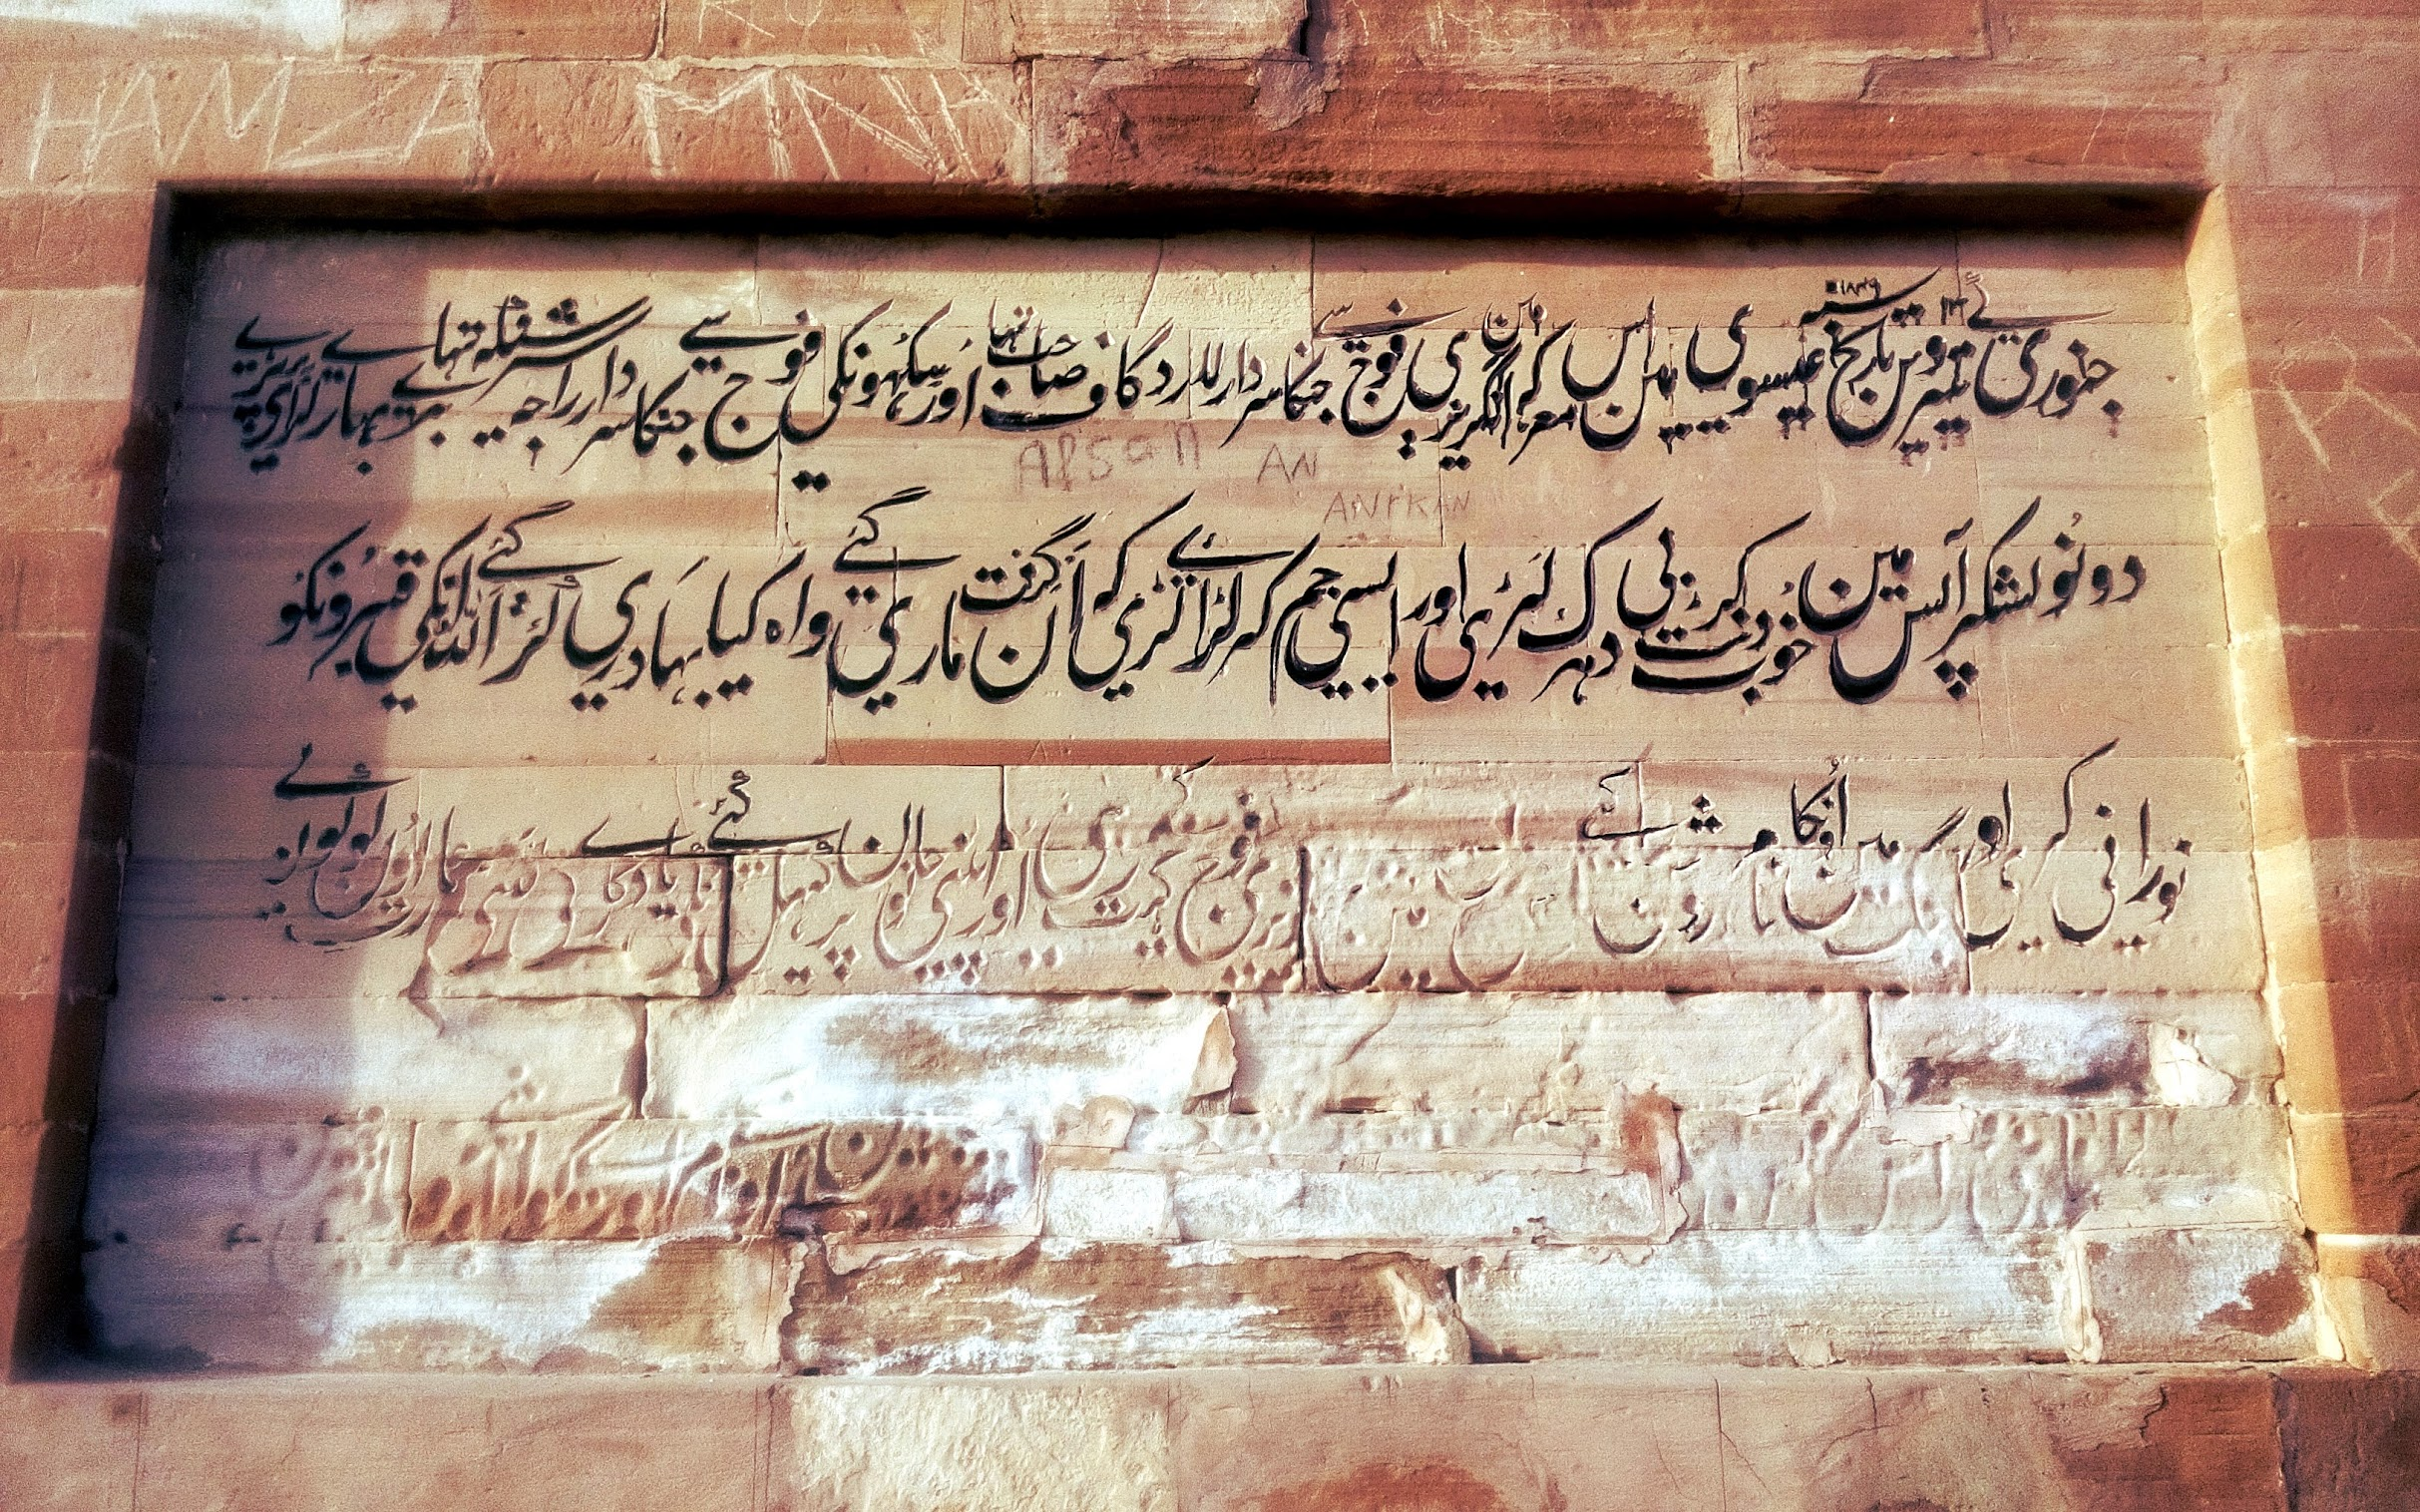 Inscription - Urdu